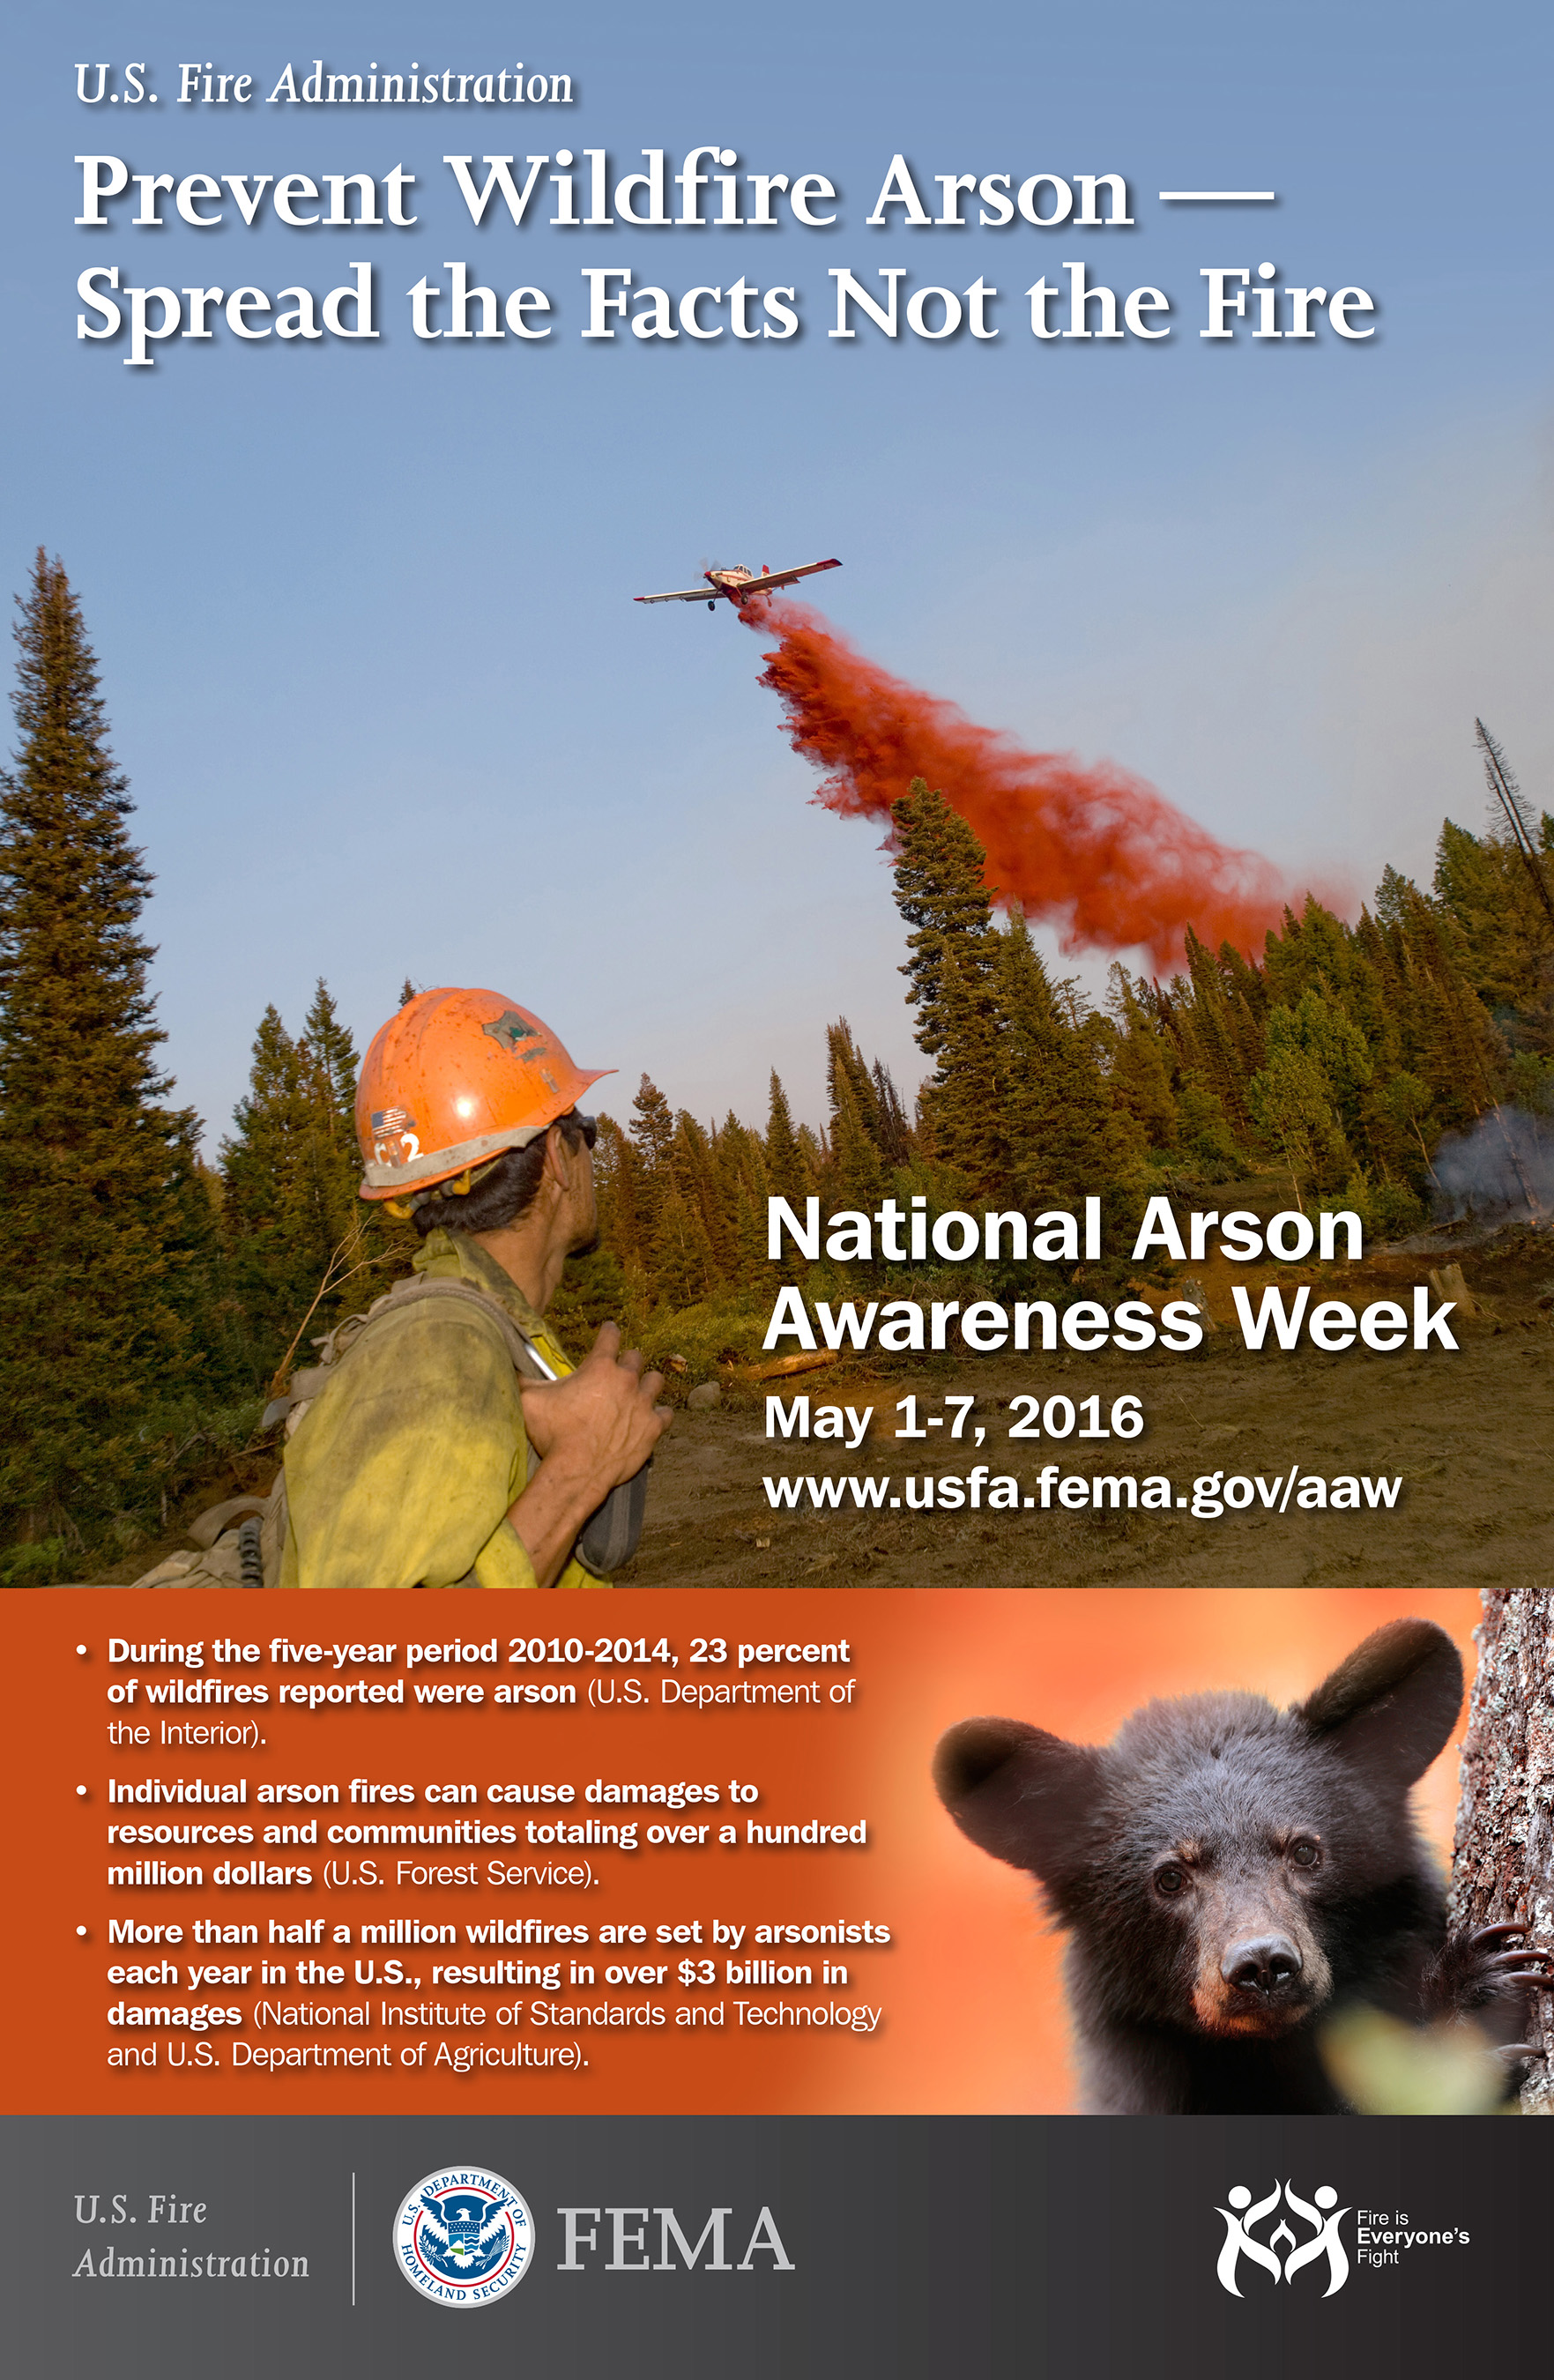 """Each year the U.S. Fire Administration shares information to raise awareness about the crime of arson. For 2016 Arson Awareness Week, the theme is """"Prevent Wildfire Arson – Spread the Facts Not the Fire""""."""